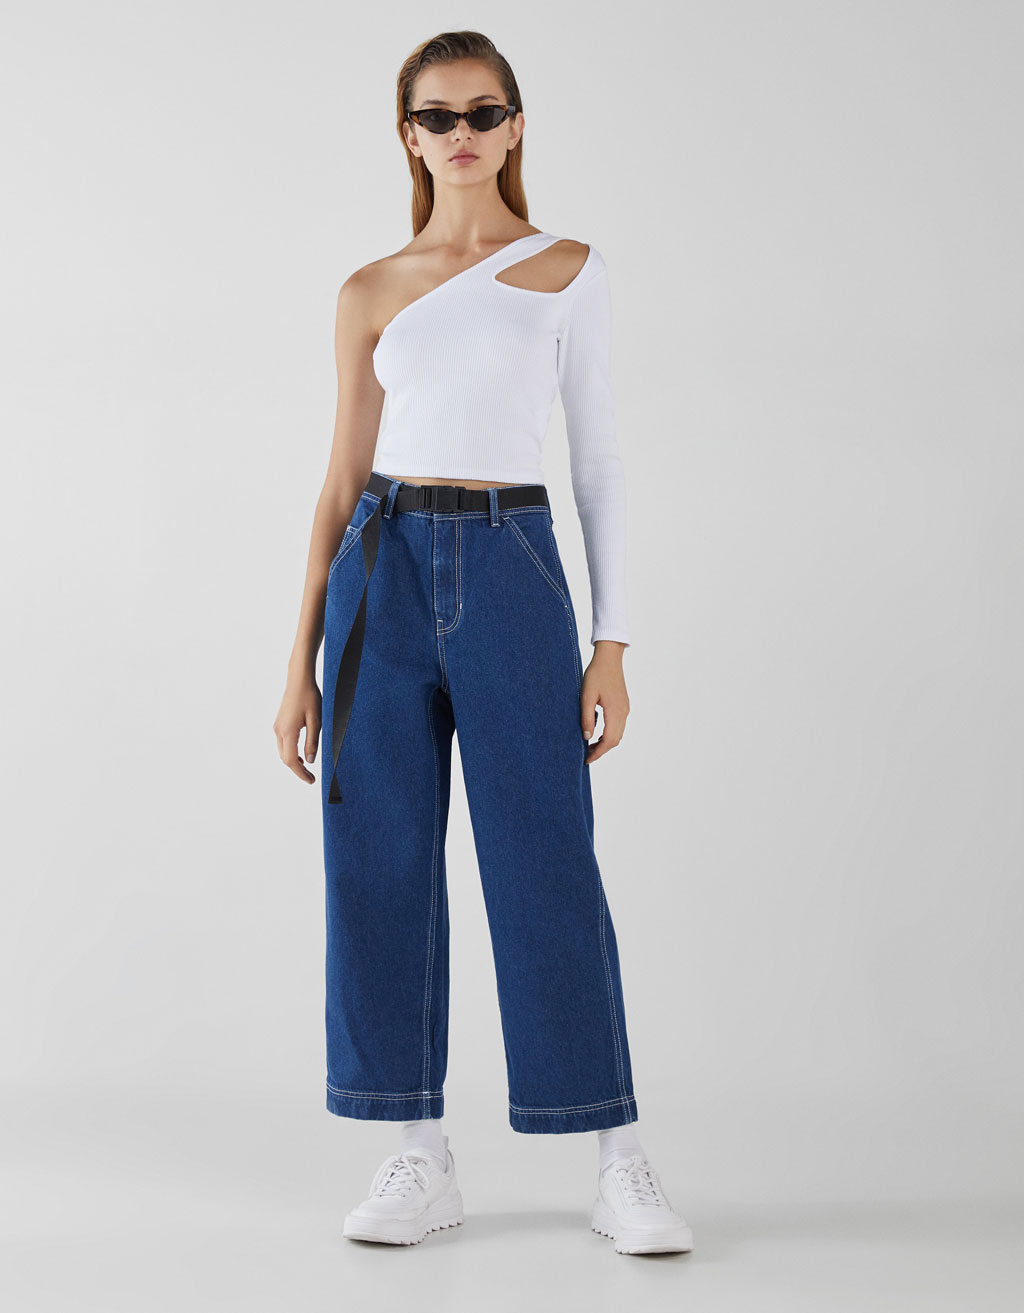 Jeans Culottes Mid Rise by Bershka